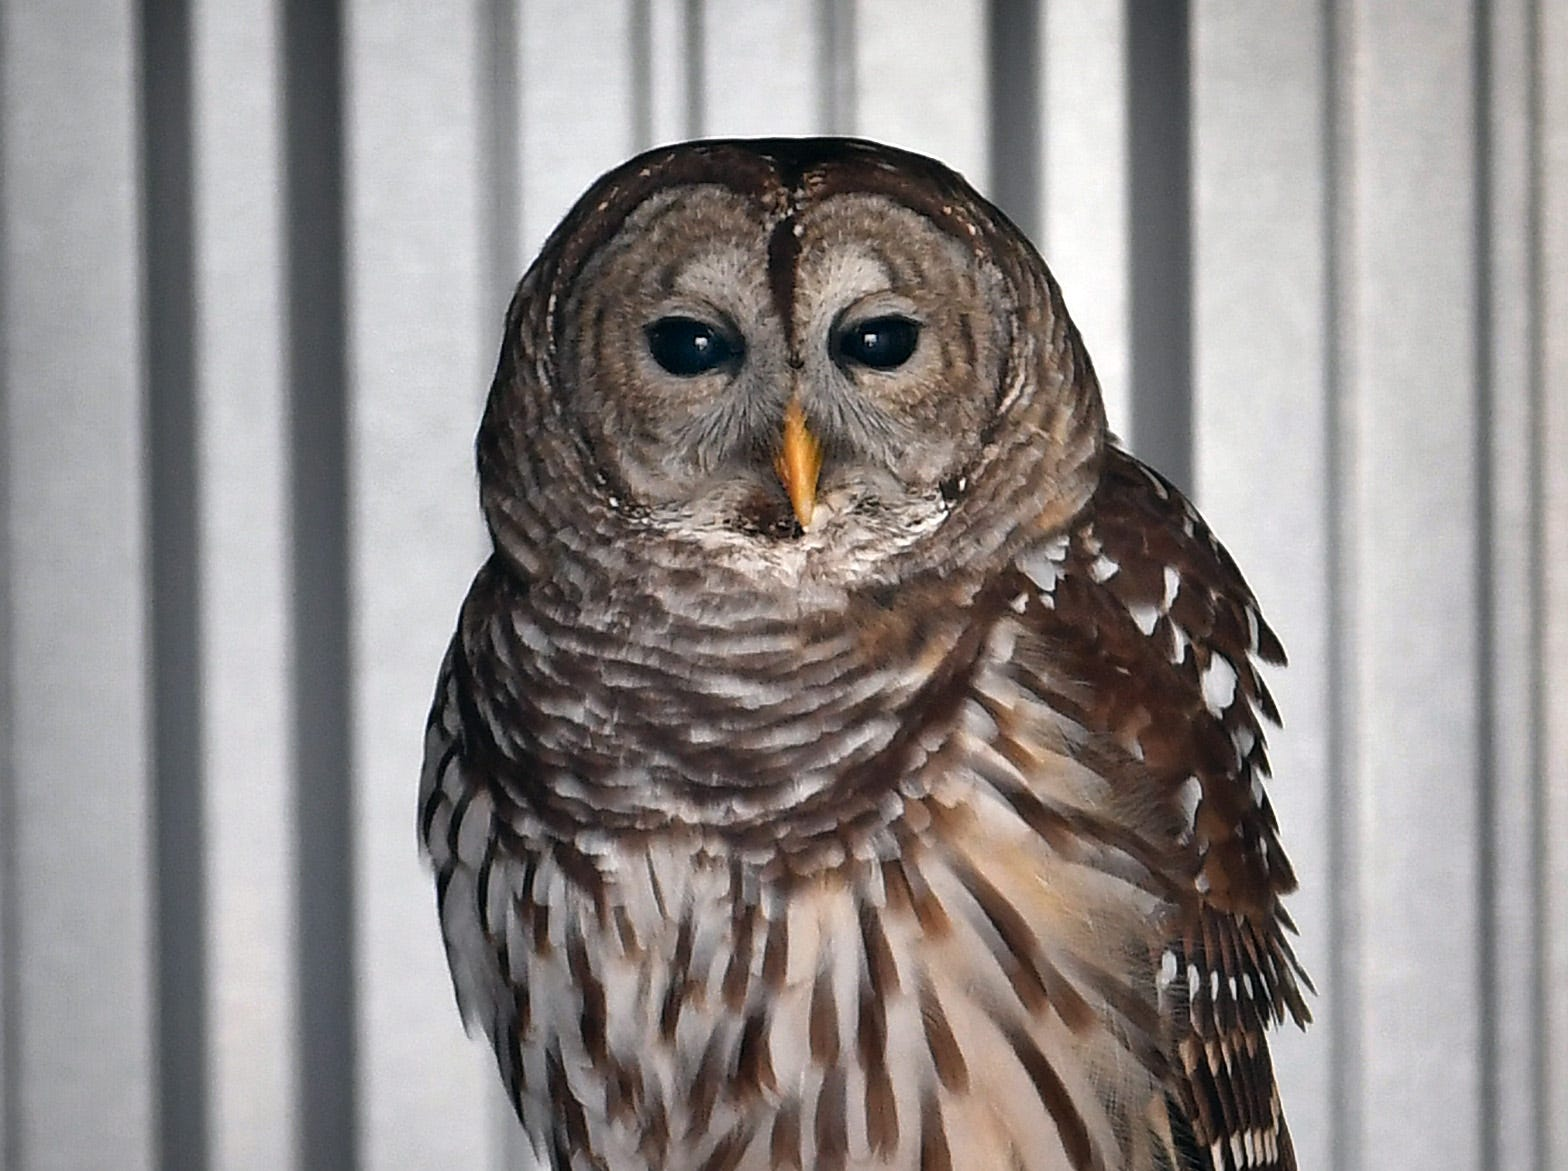 Lindsay is a Barred Owl that was injured in 2011 and has limited eyesight and is now an avian ambassador in the new Exhibit and Education building at Wild Bird Rescue.